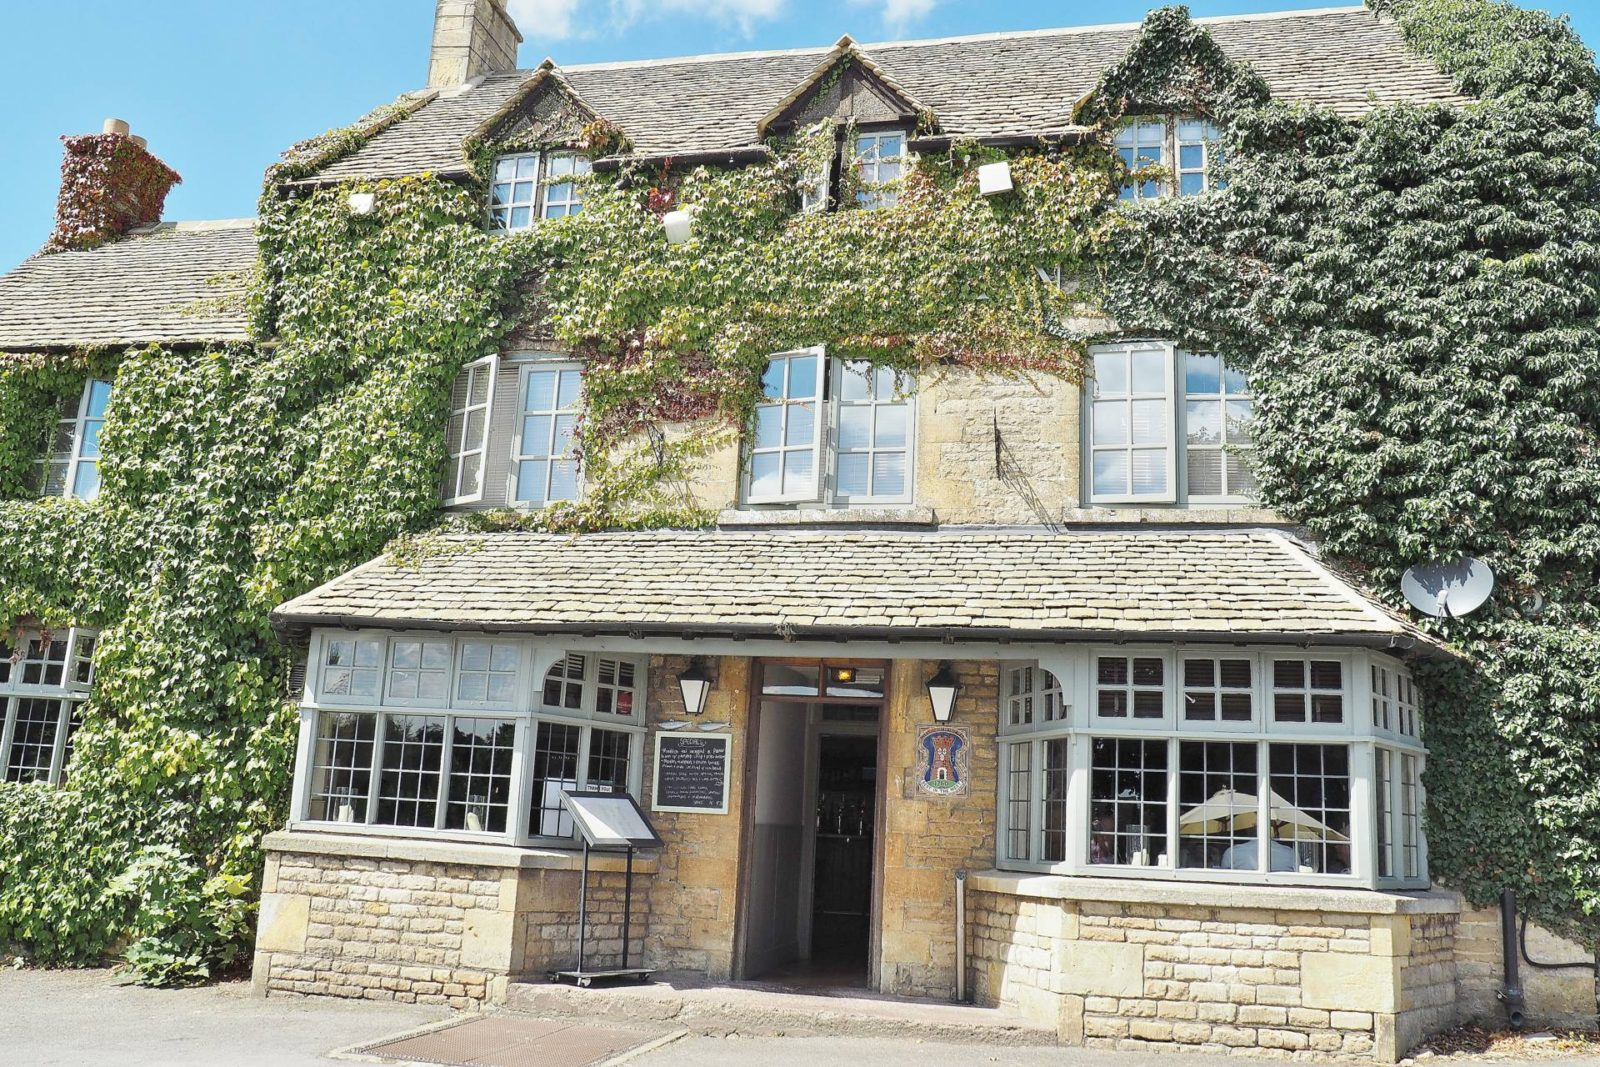 The Bell Inn Cotswold Moreton-In-Marsh